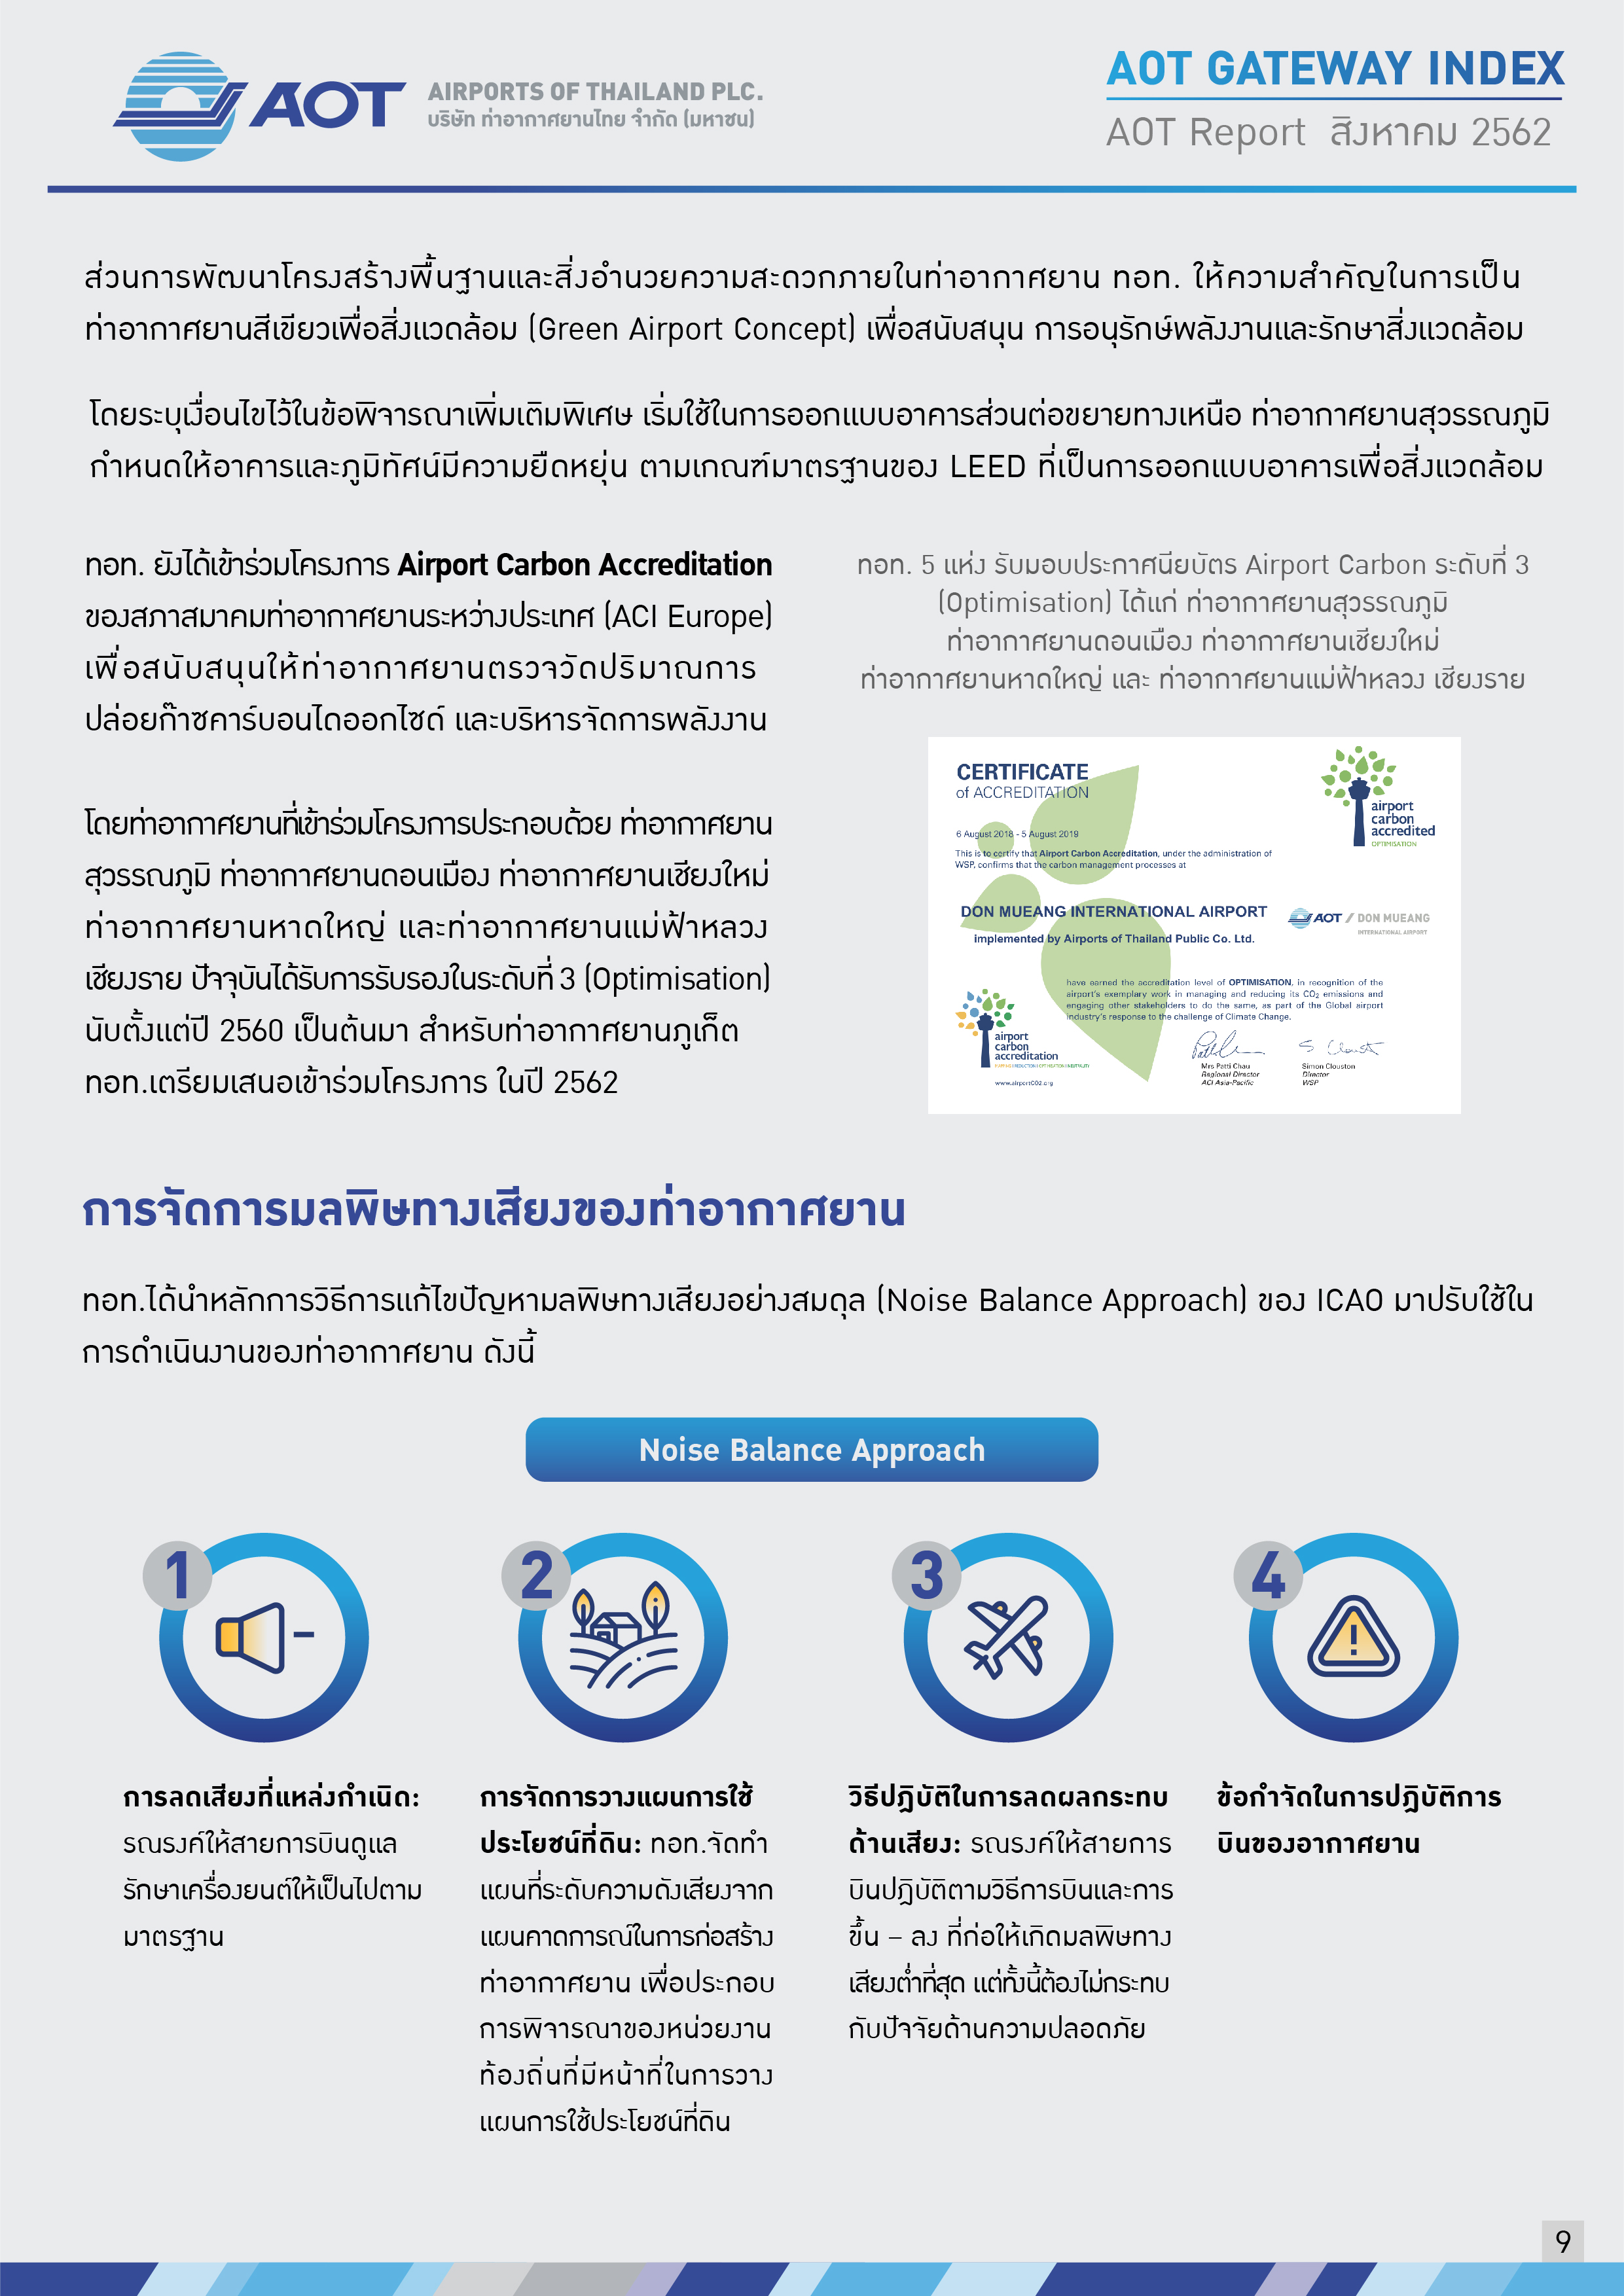 AOTcentent2019_Index 09_AOT เคียงคู่สังคม_V7_20191031_Page09